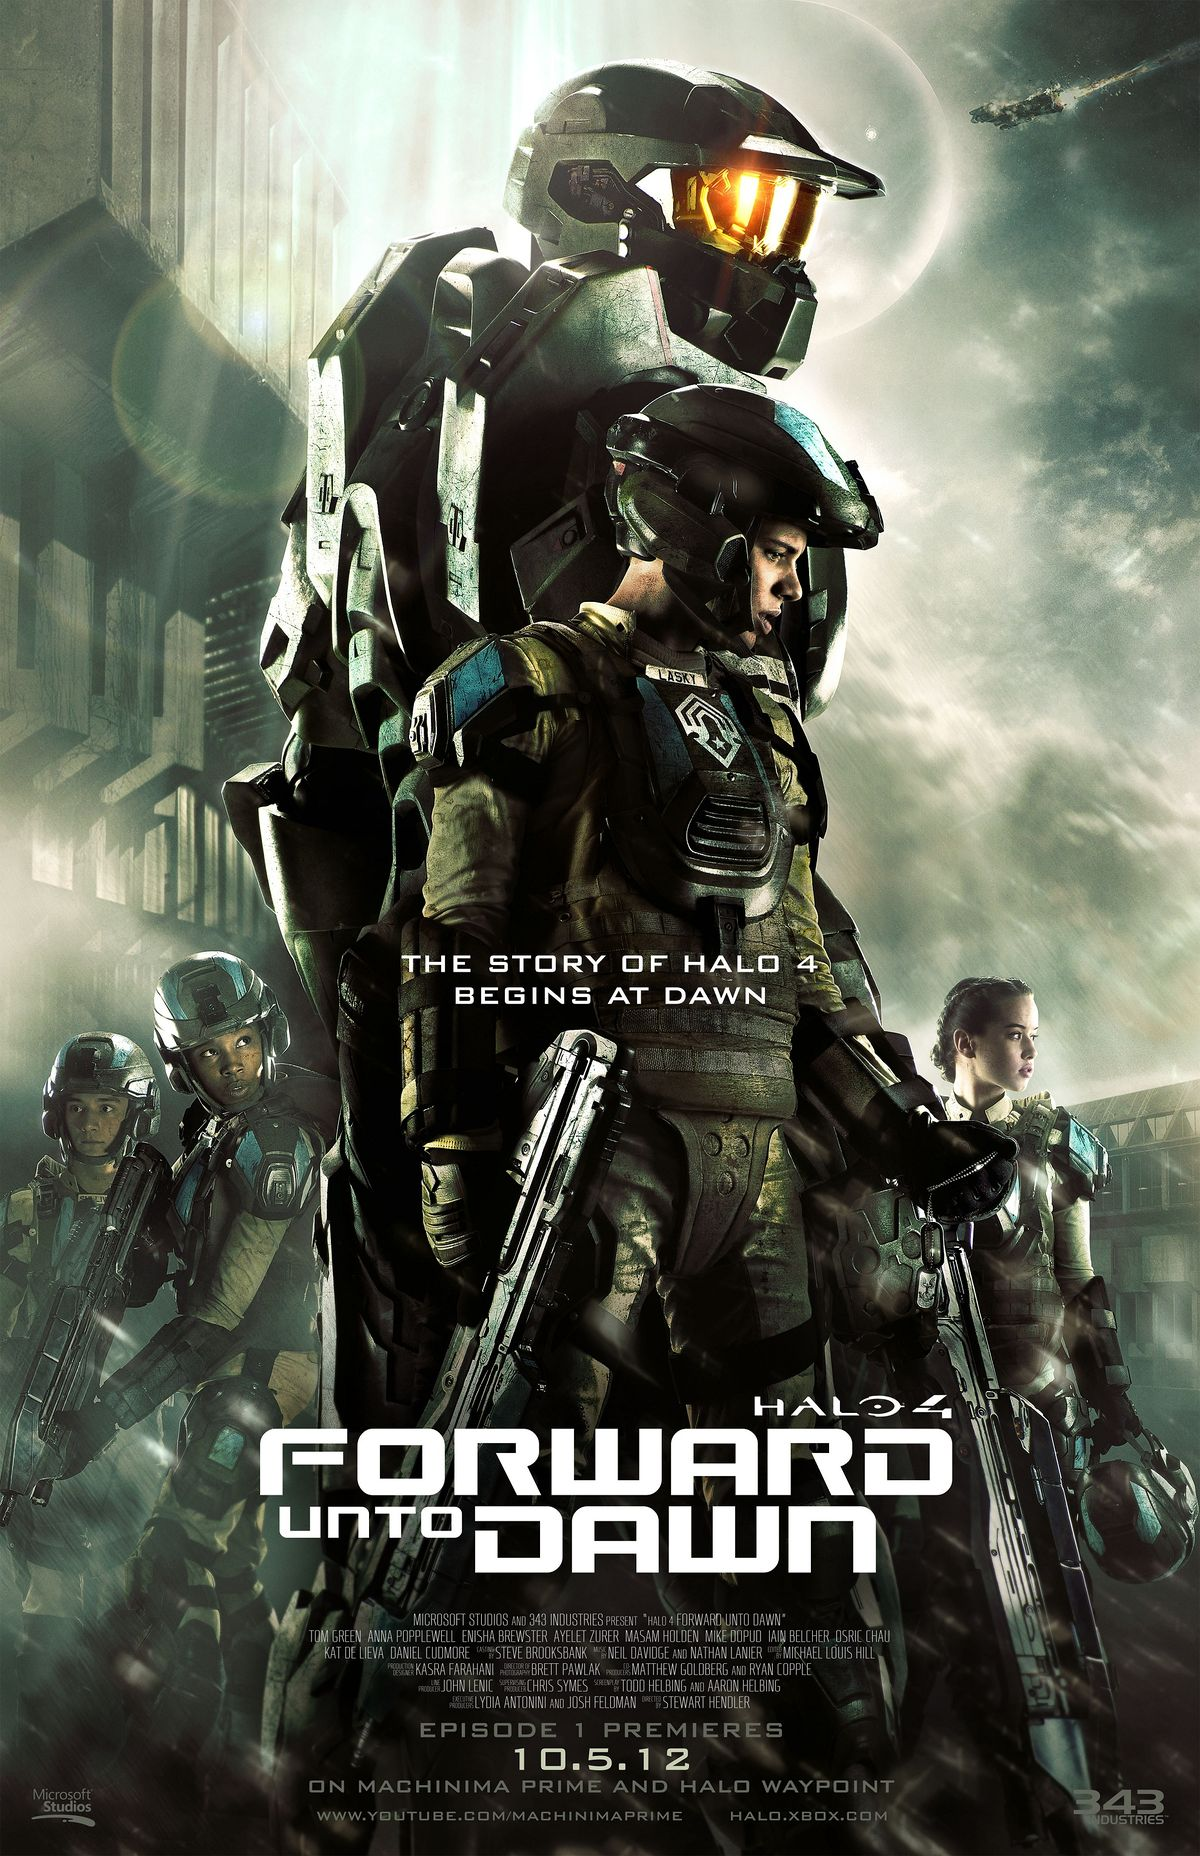 Halo 4 Forward Unto Dawn Halopedia the Halo wiki